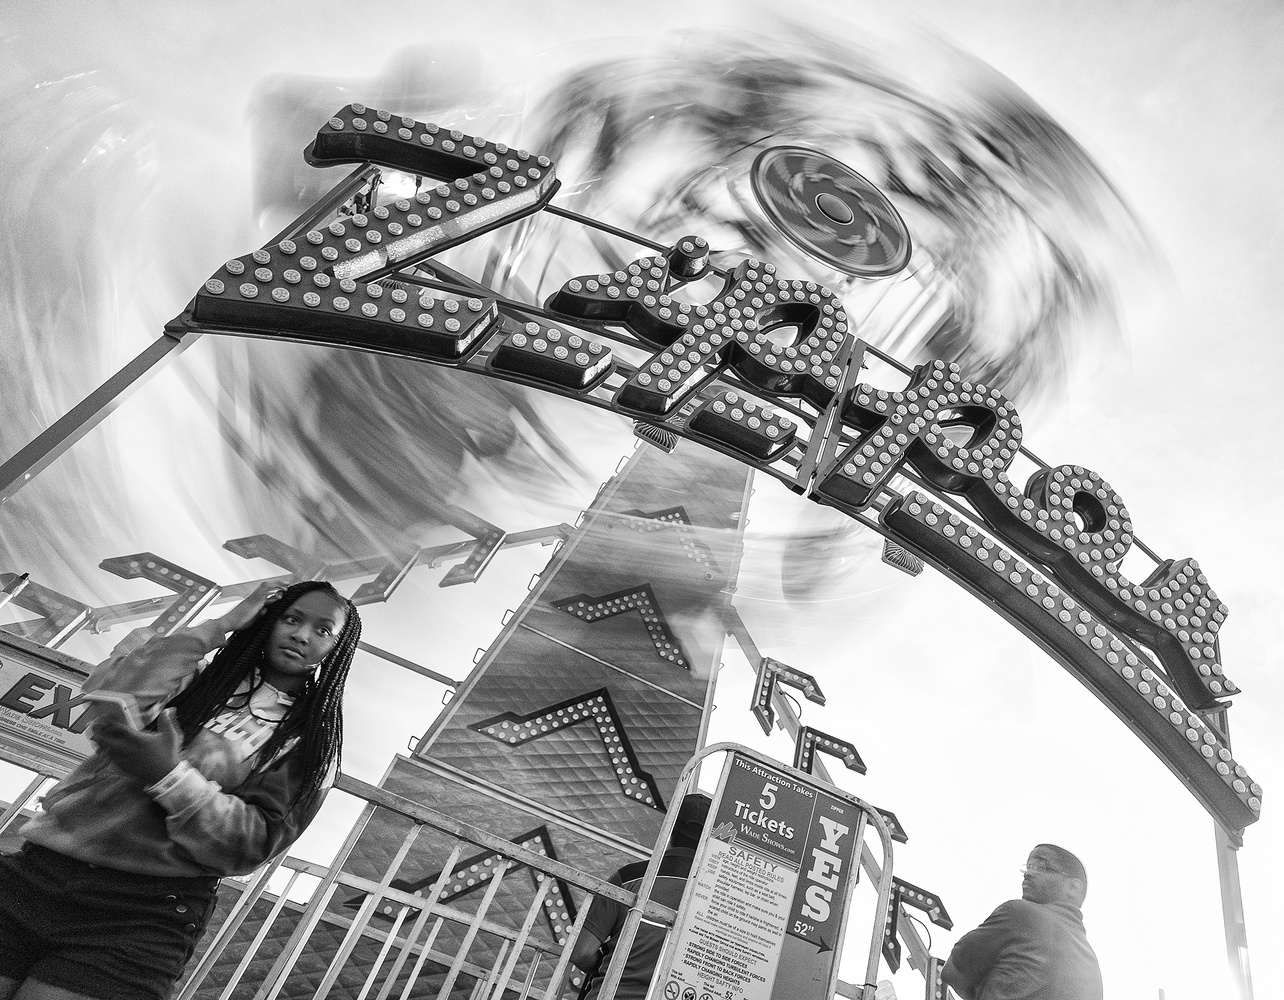 Using the continuous shooting mode with a slow shutter speed caught this moment between the ride operator and the woman in the foreground, with the ride spinning around behind them.